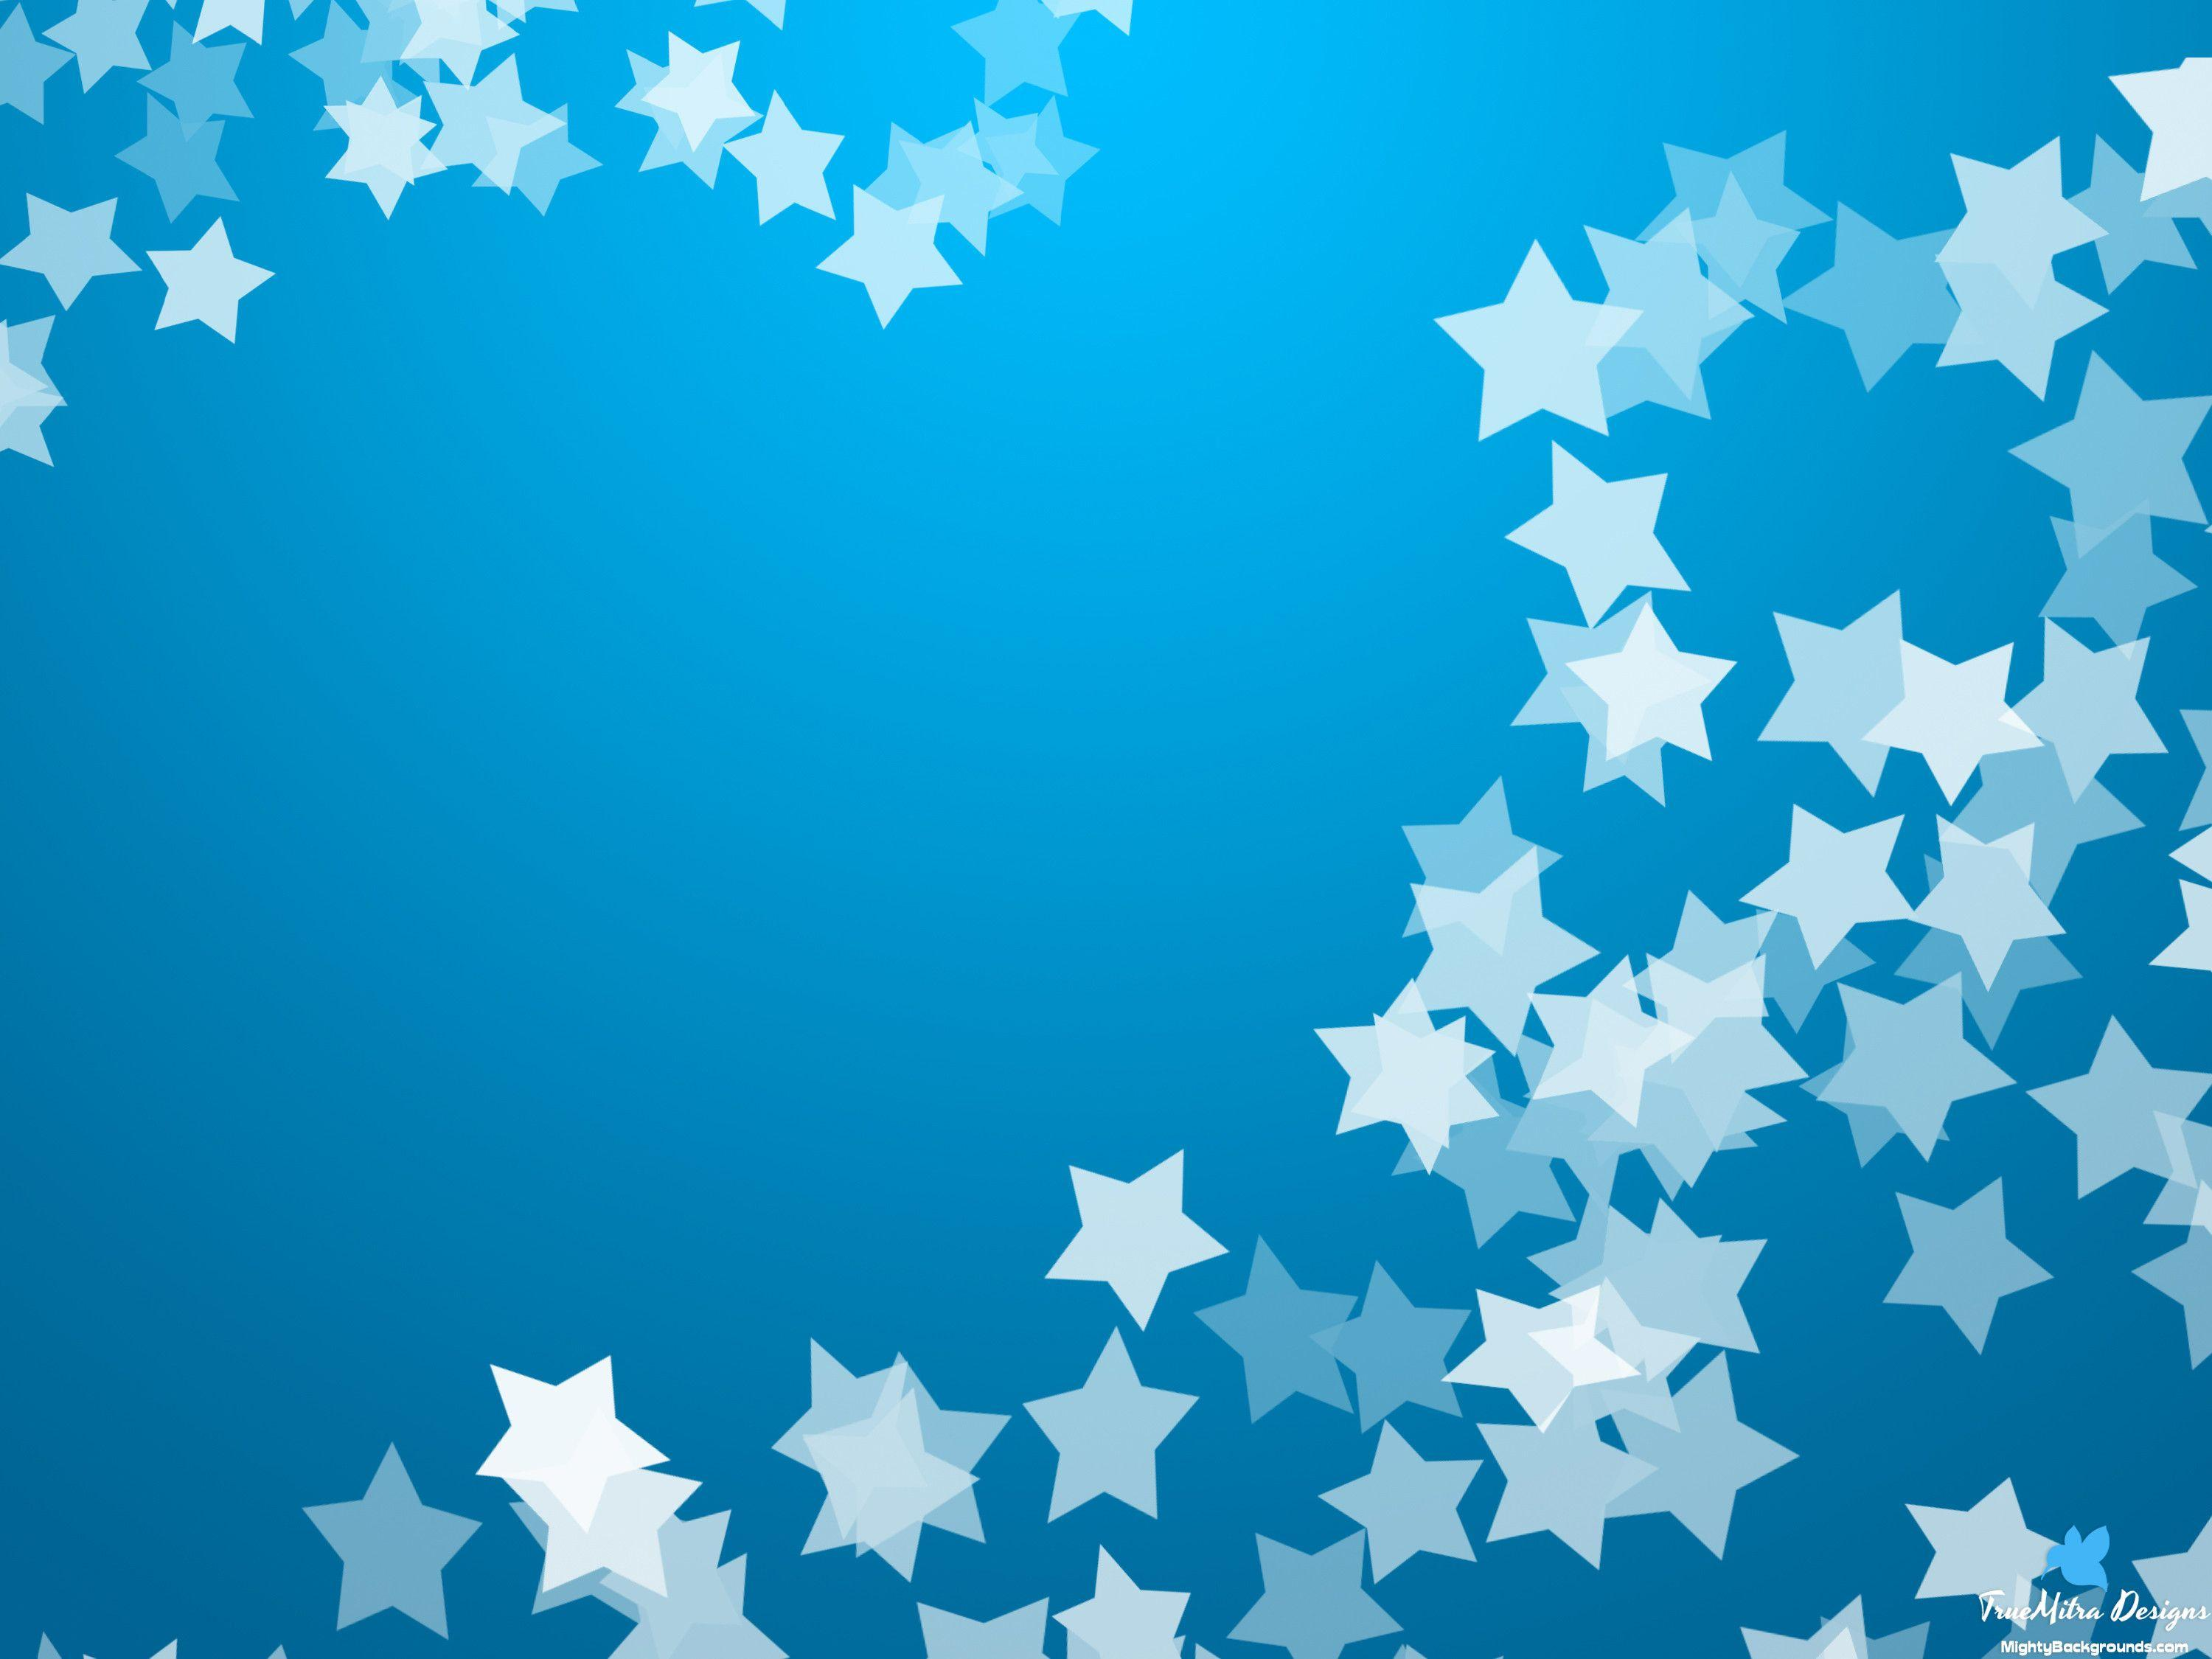 stars wallpapers backgrounds images - photo #27